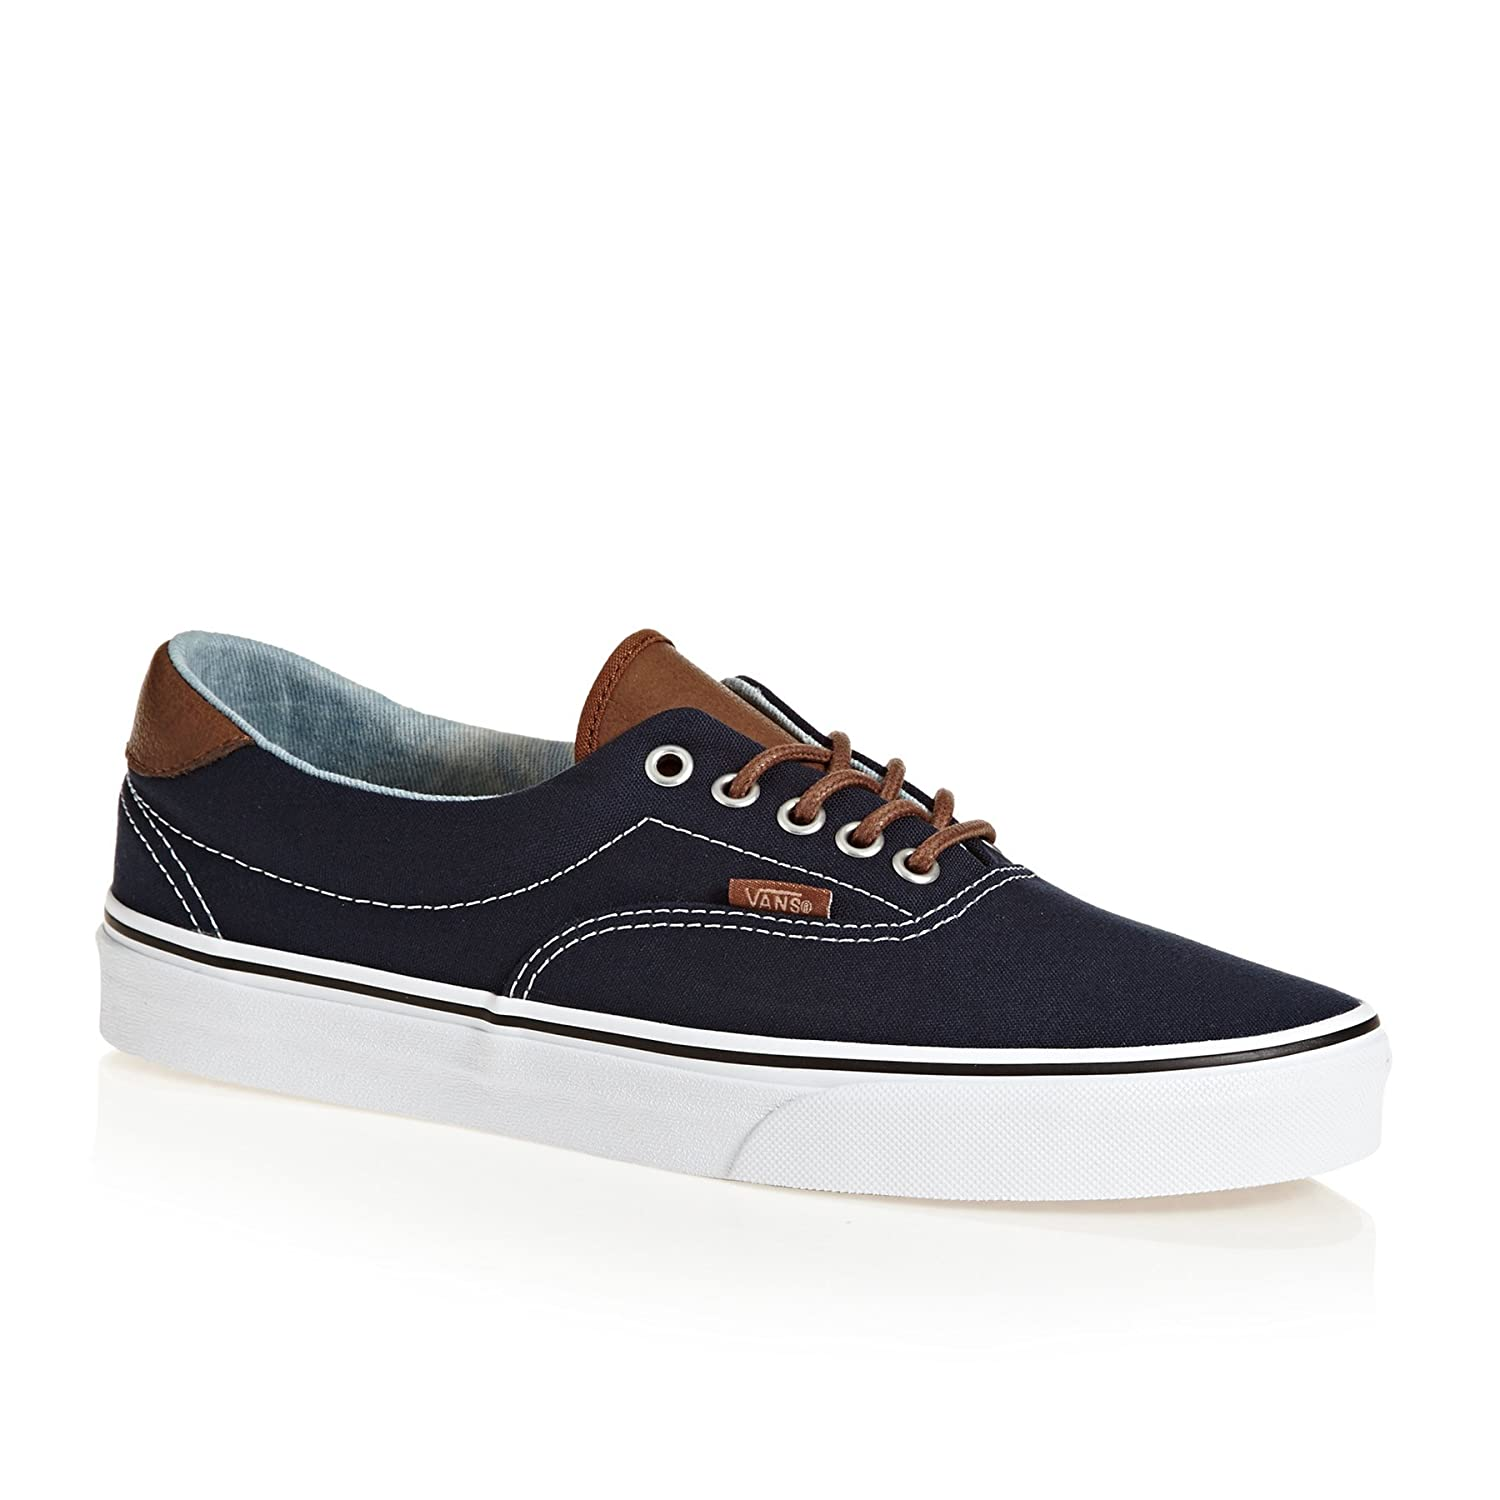 Vans Era 59 B074H94P9R 8.5 M US Women / 7 M US Men|(C&l) Dress Blues/Acid Denim